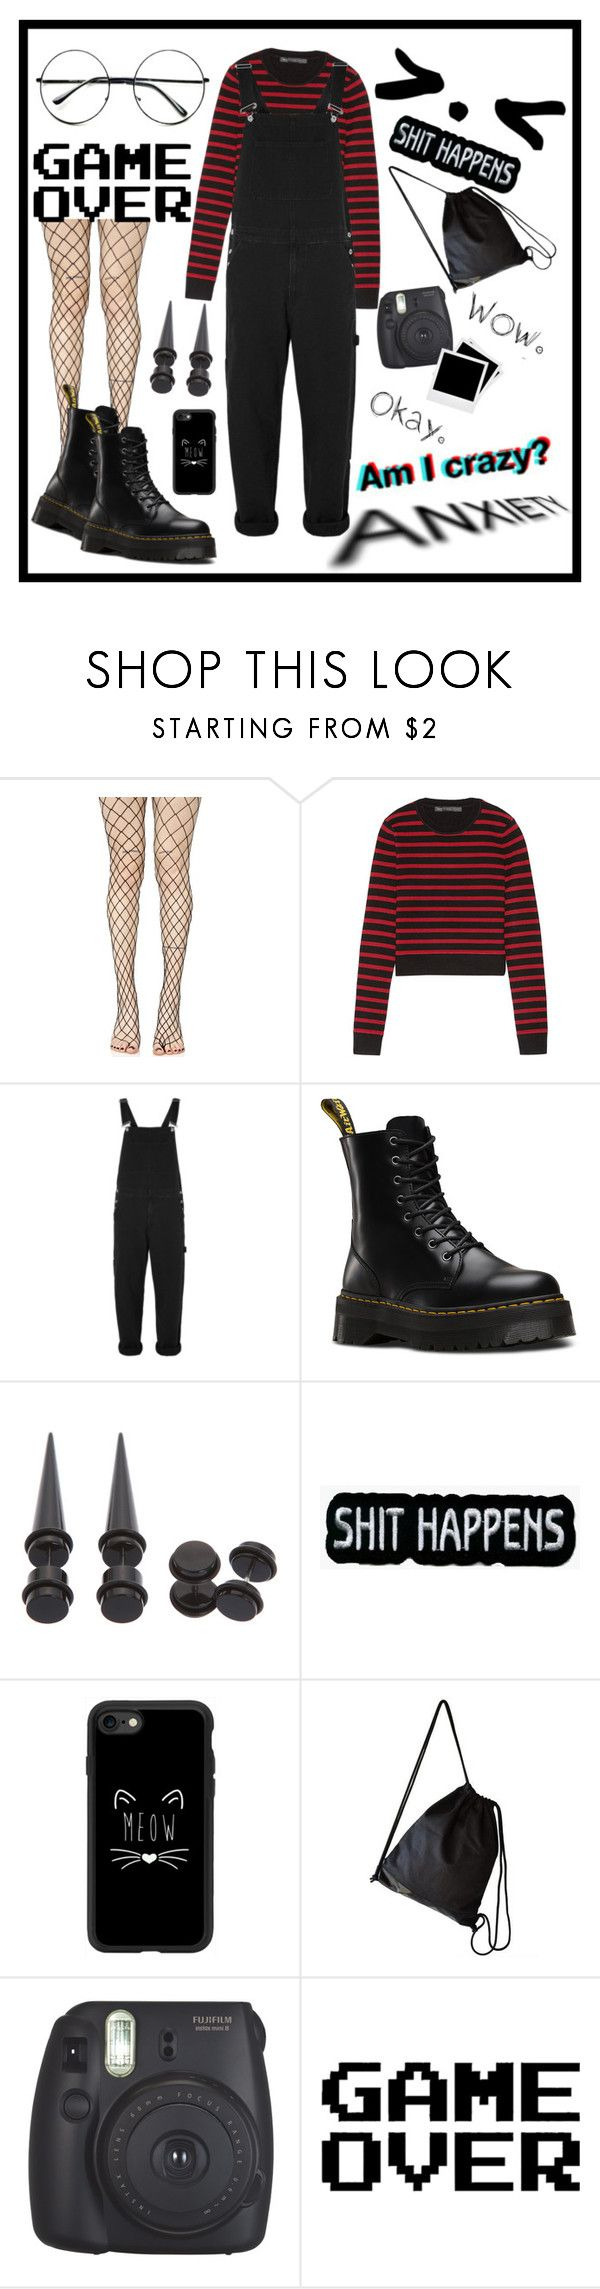 """Untitled #25"" by killixgstalking ❤ liked on Polyvore featuring Leg Avenue, Marc by Marc Jacobs, Topman, Dr. Martens, Hot Topic, Casetify, Fujifilm, Polaroid and Retrò"